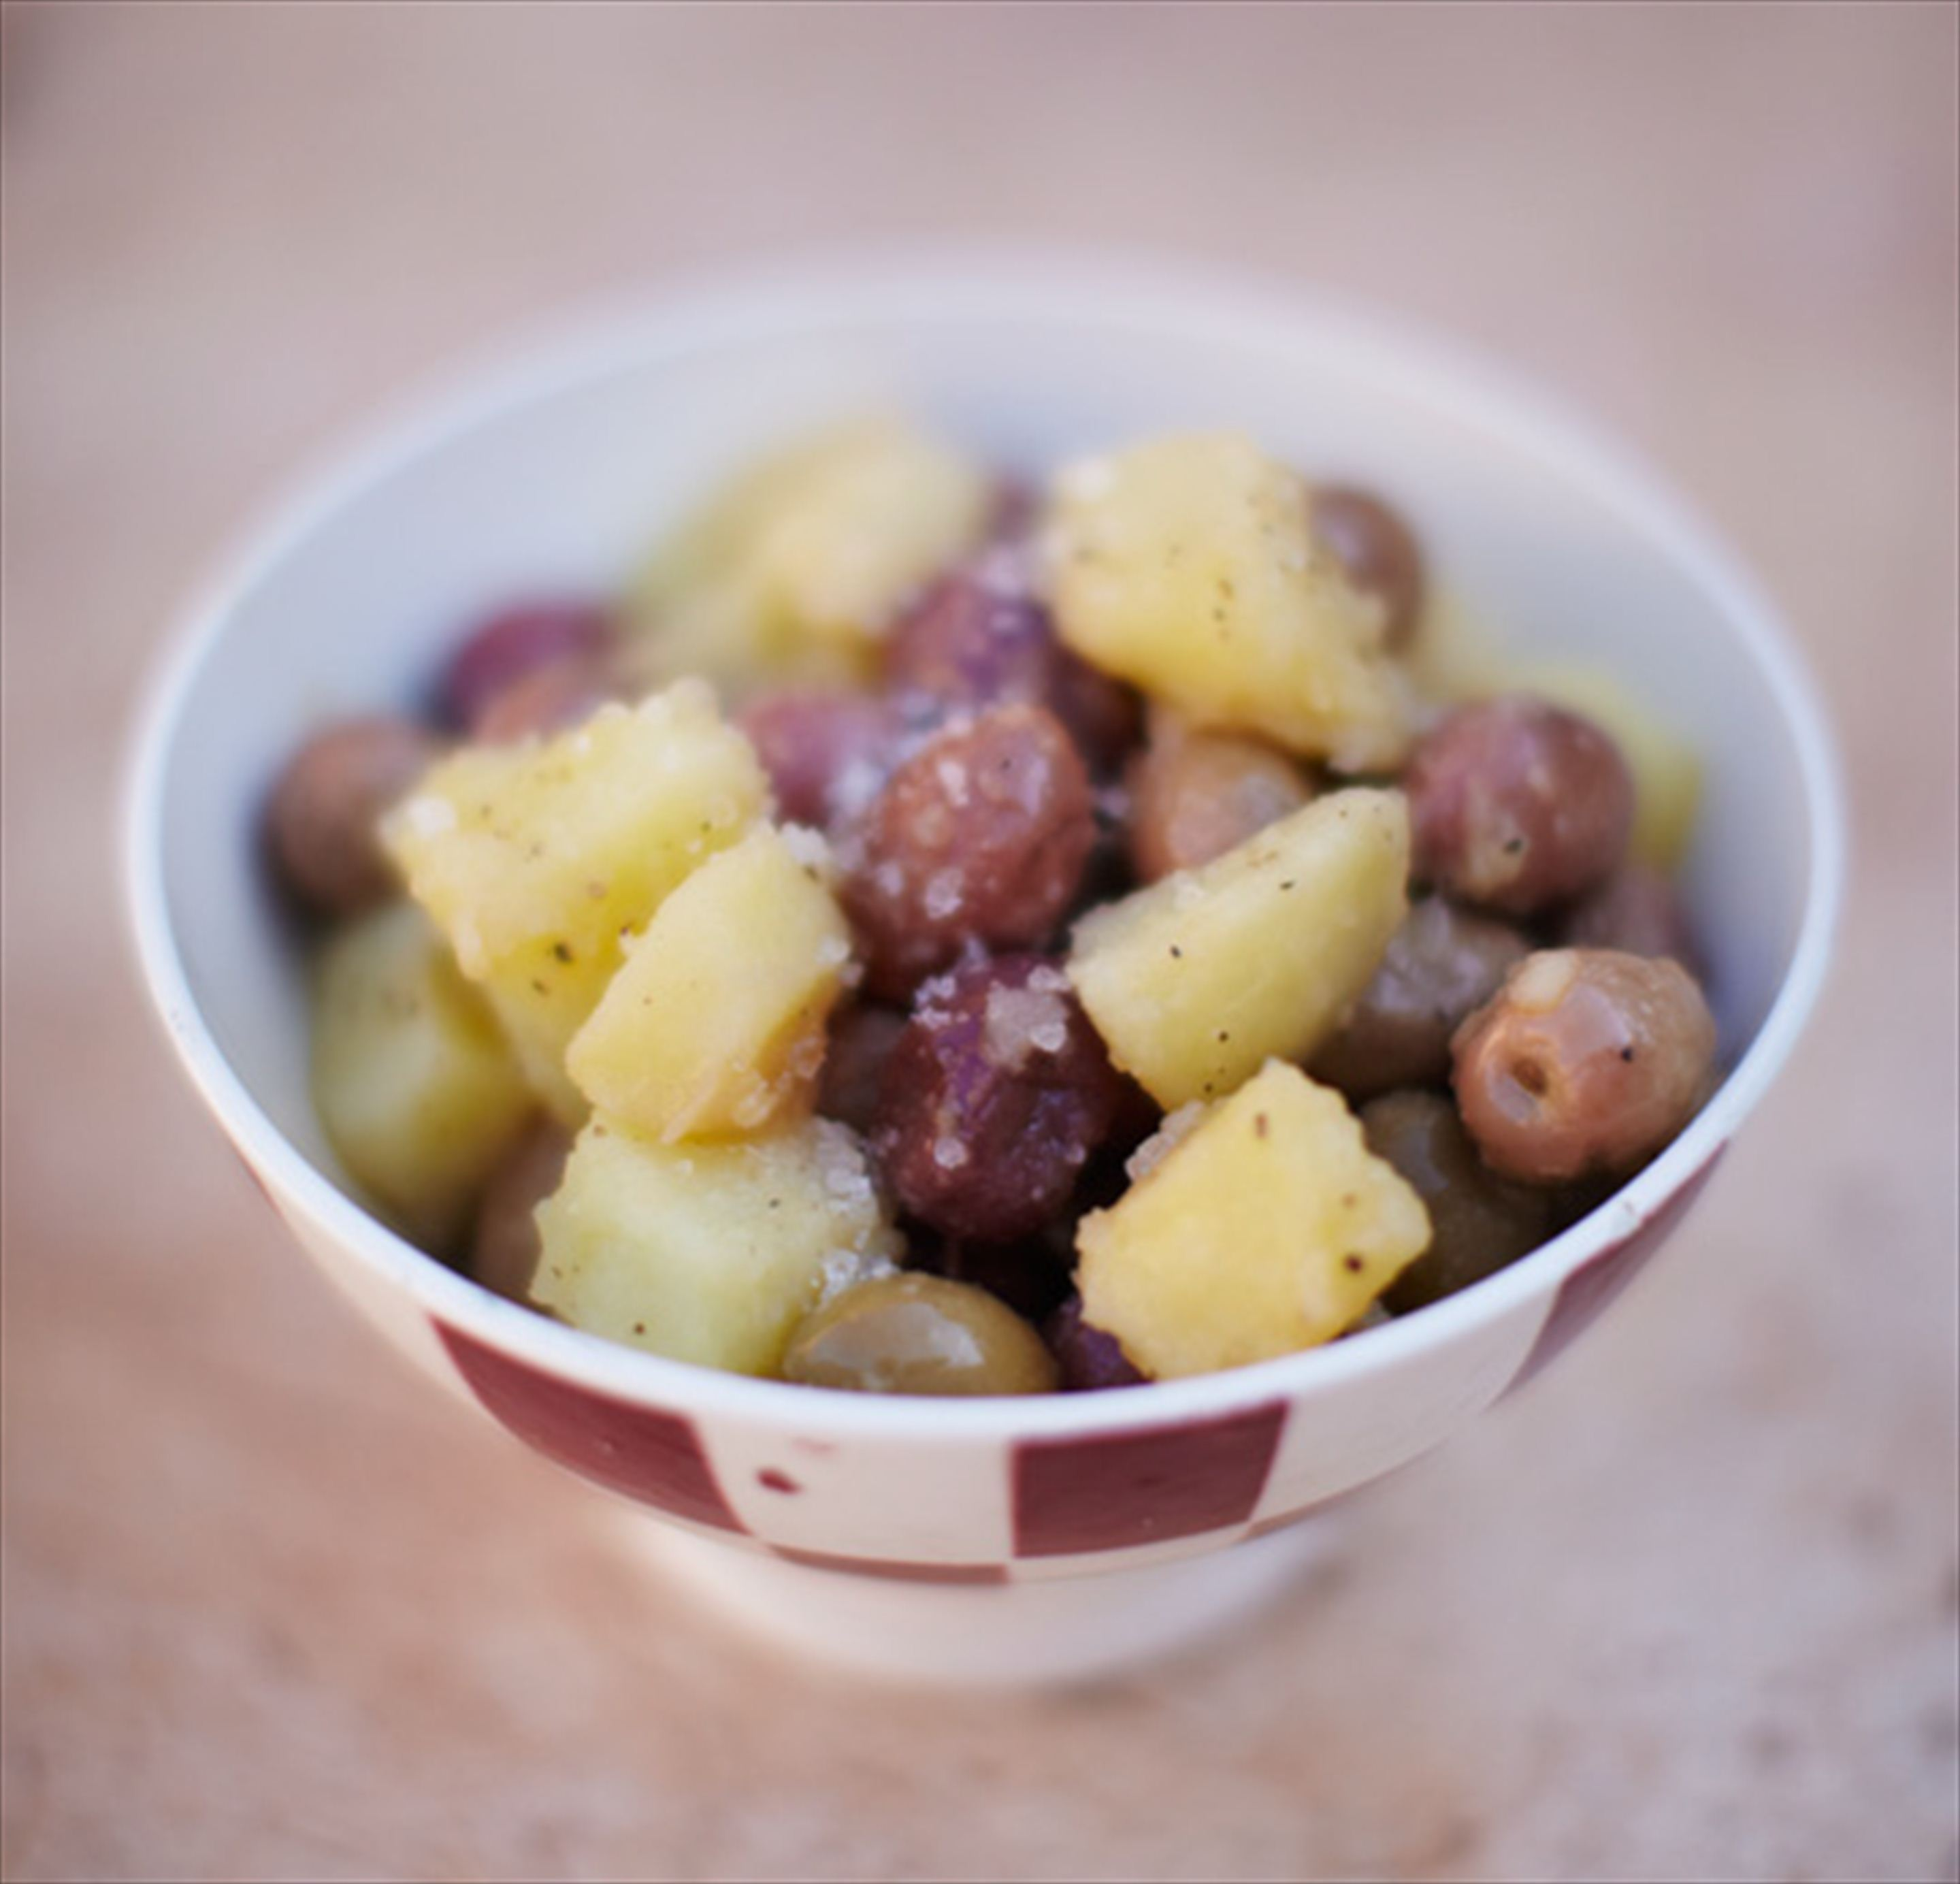 Potato & olive salad